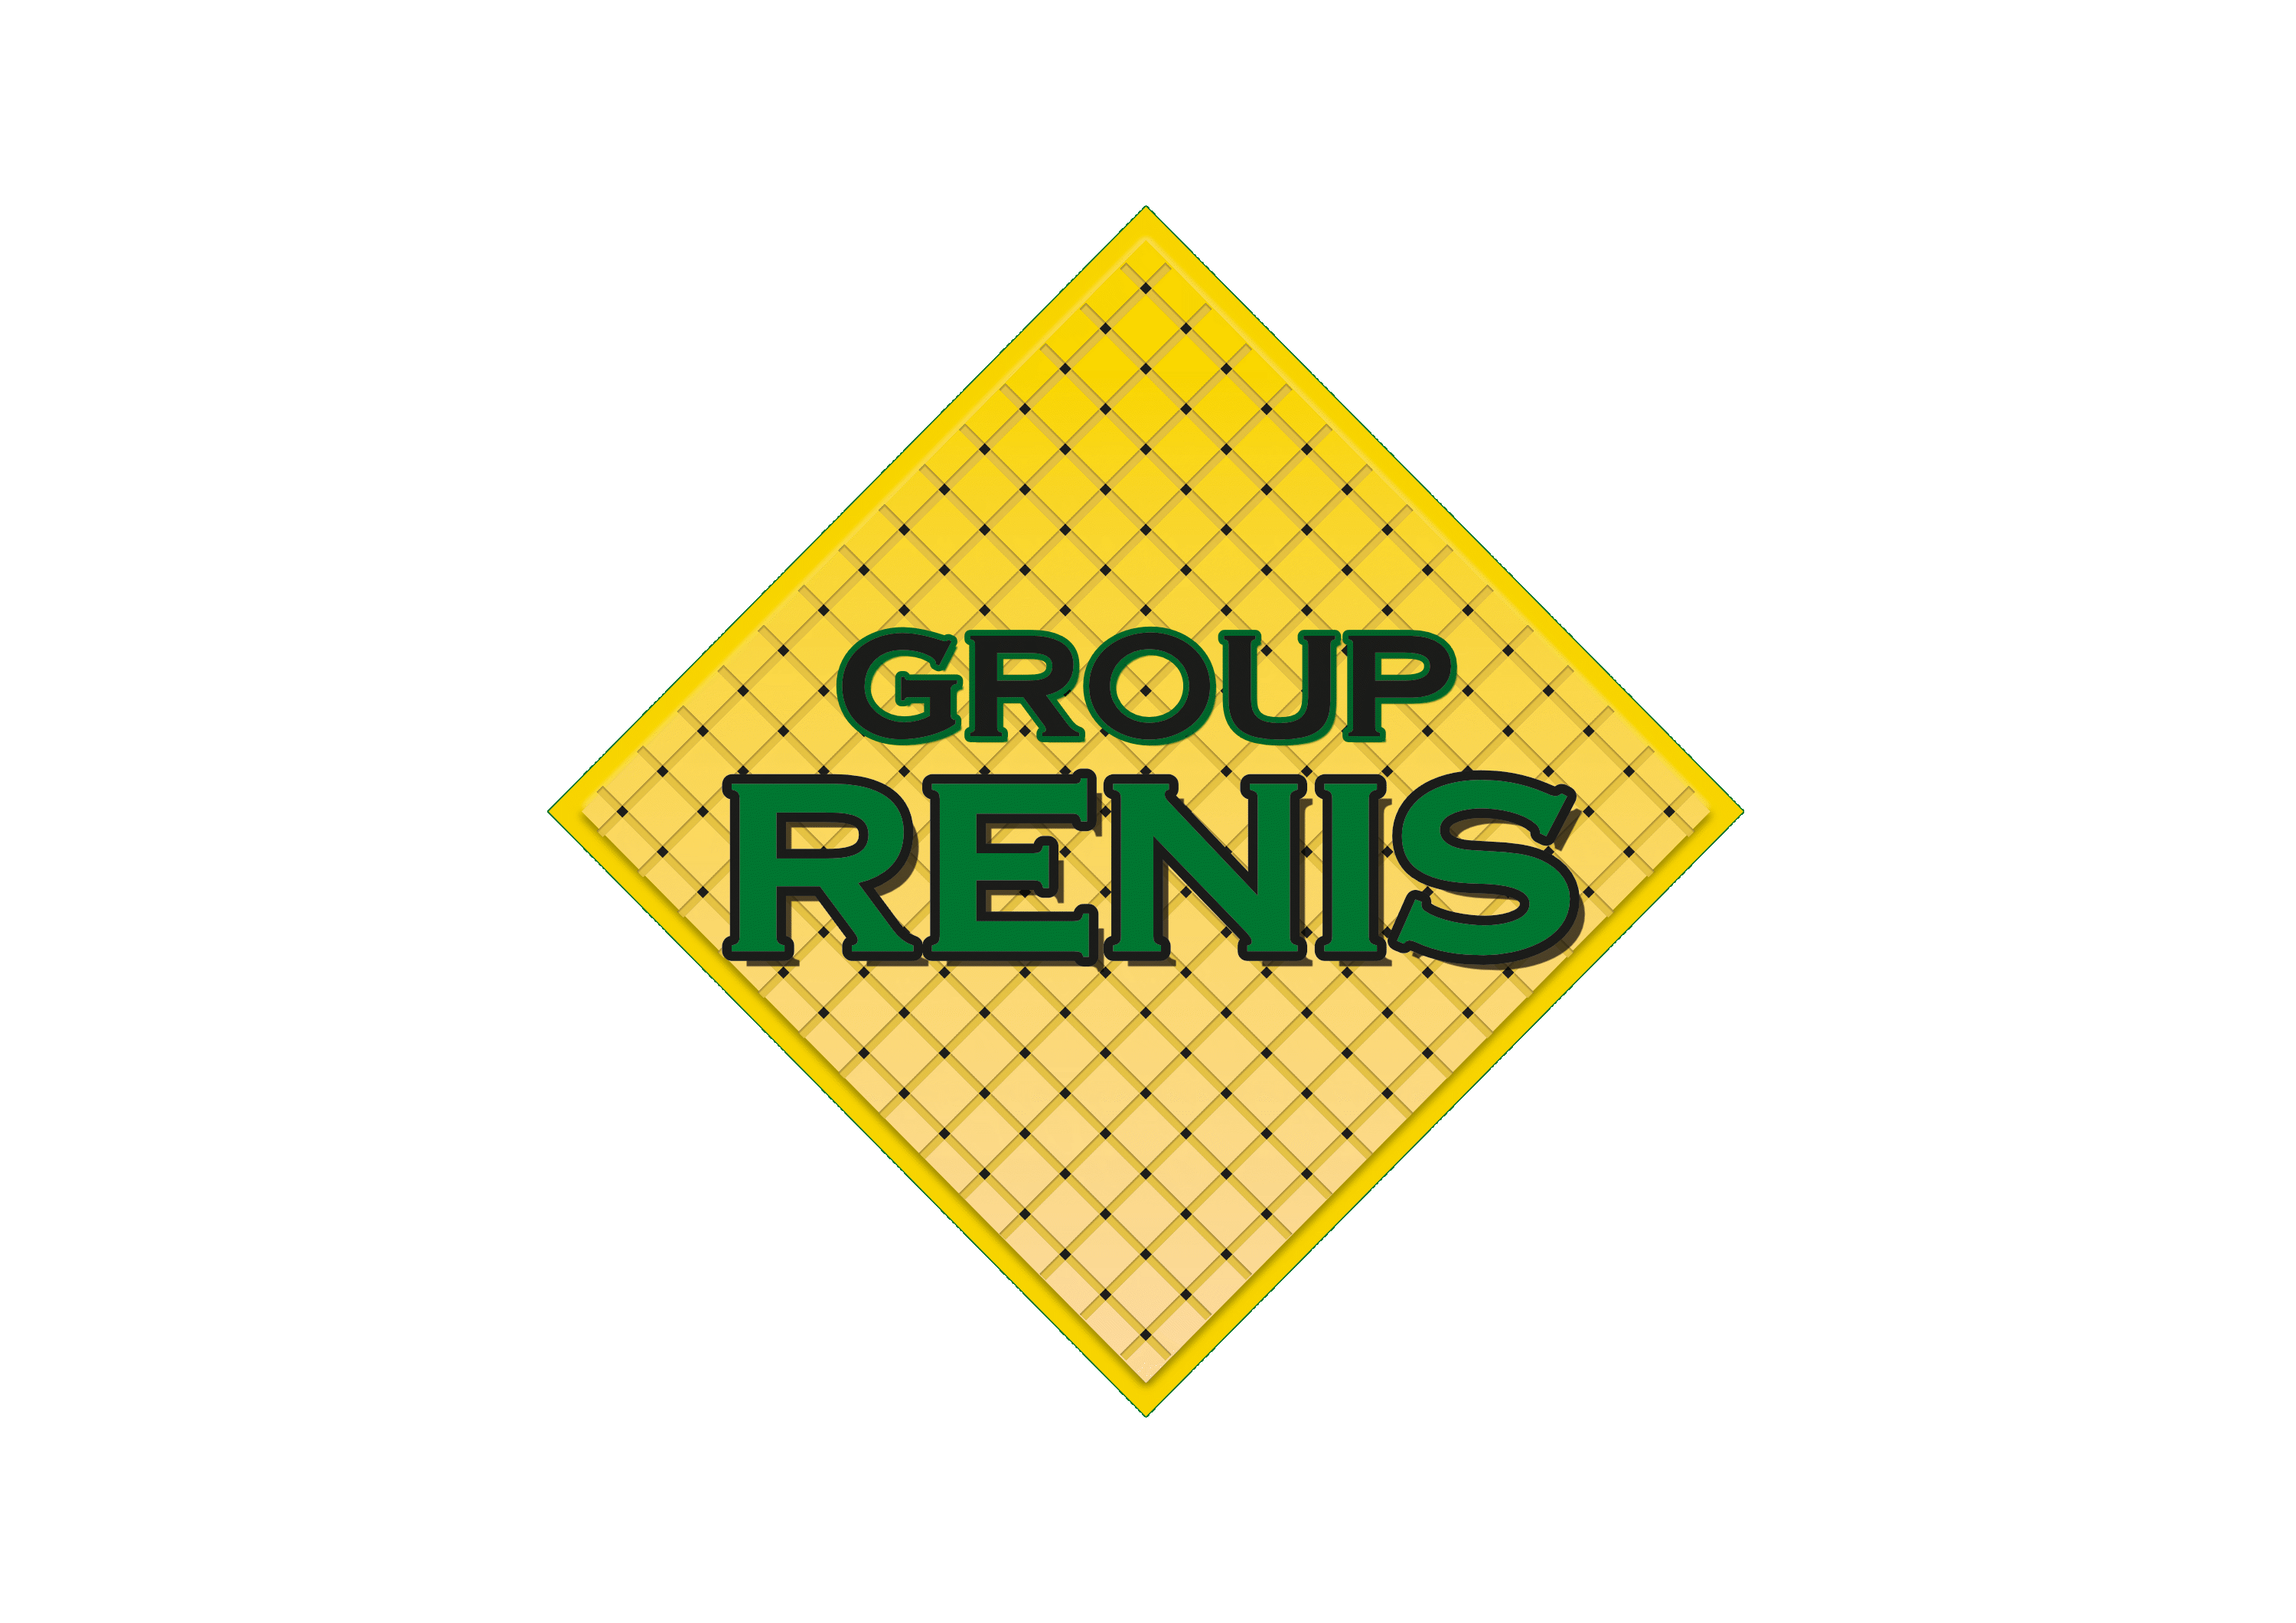 Renis Group